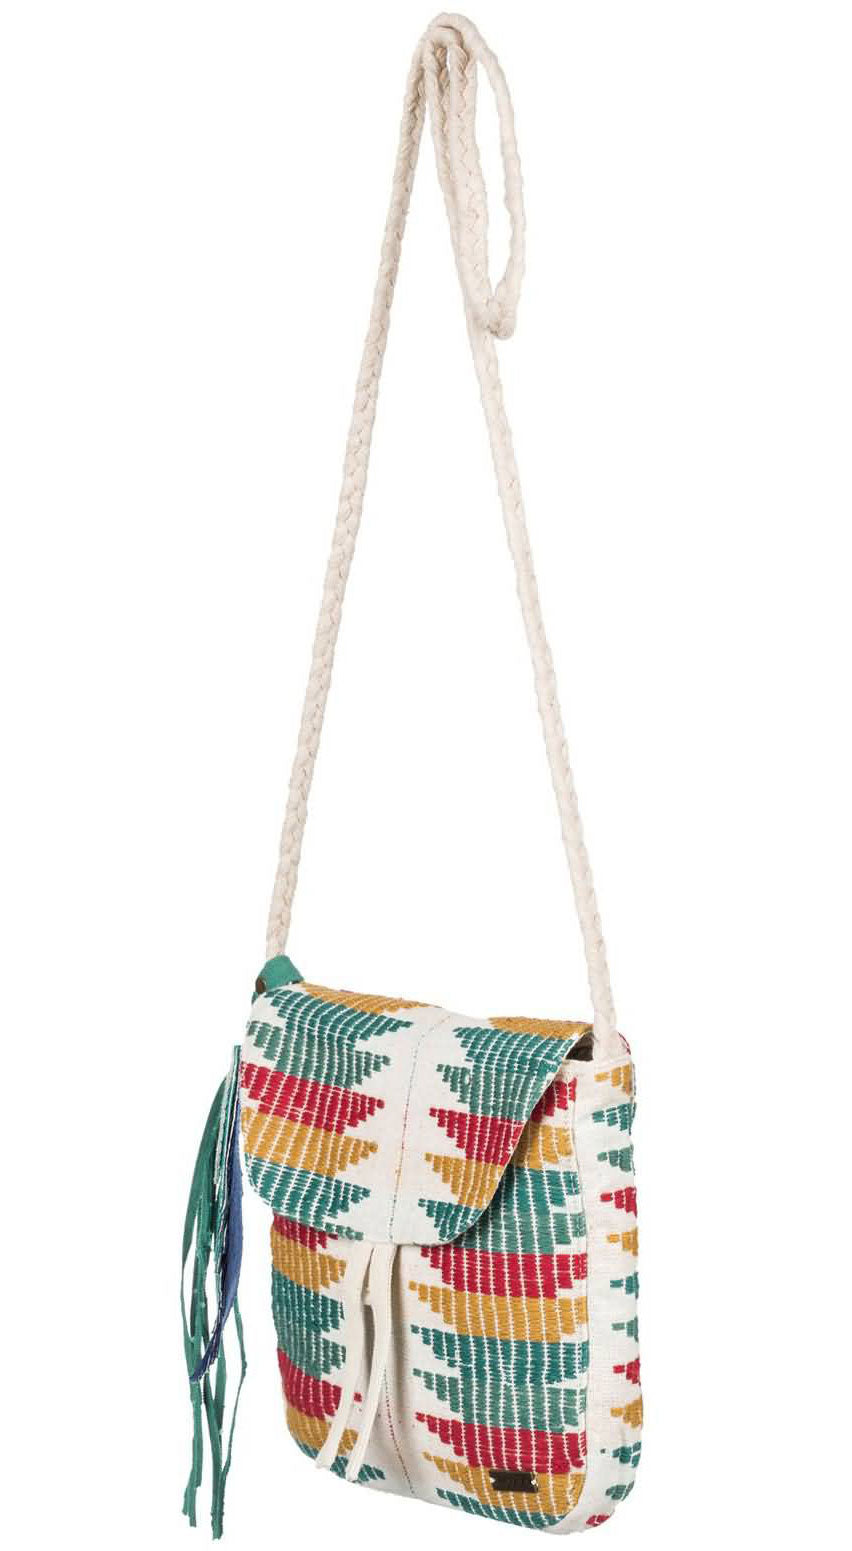 Roxy Summer 2017 Womens Beach Bags & Accessories Collection